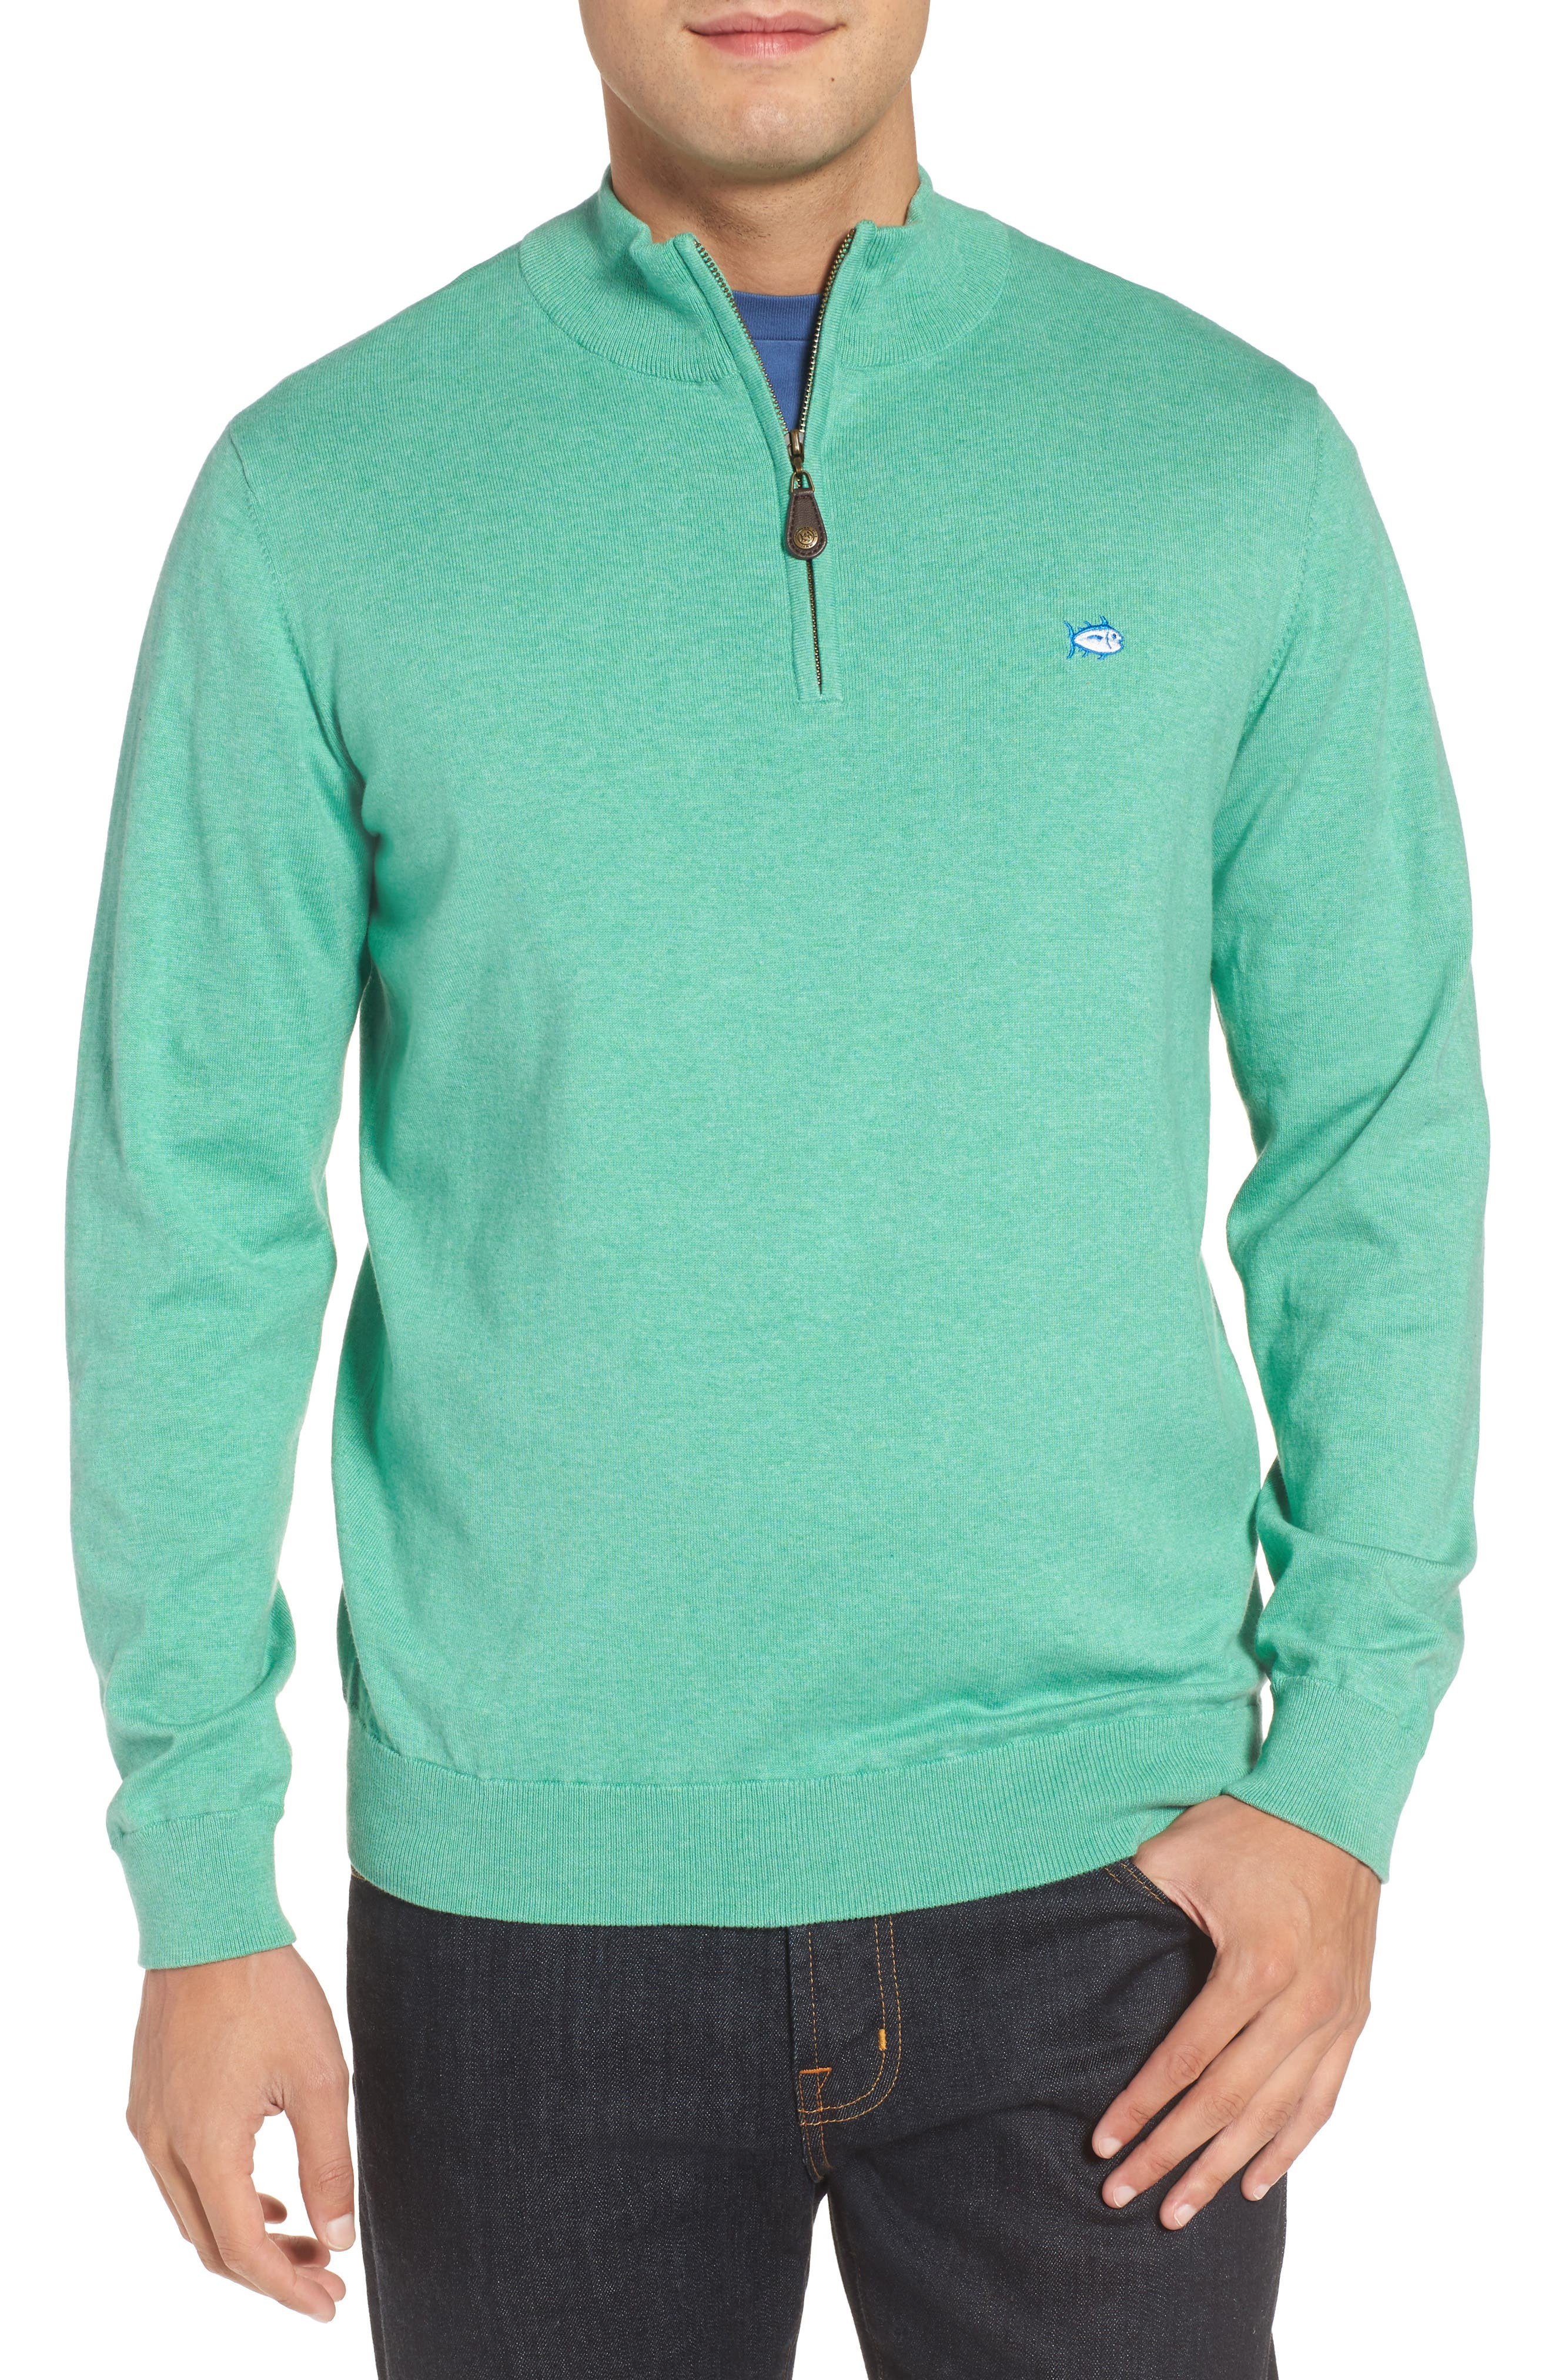 Alternate Image 1 Selected - Southern Tide Marina Cay Quarter Zip Pullover